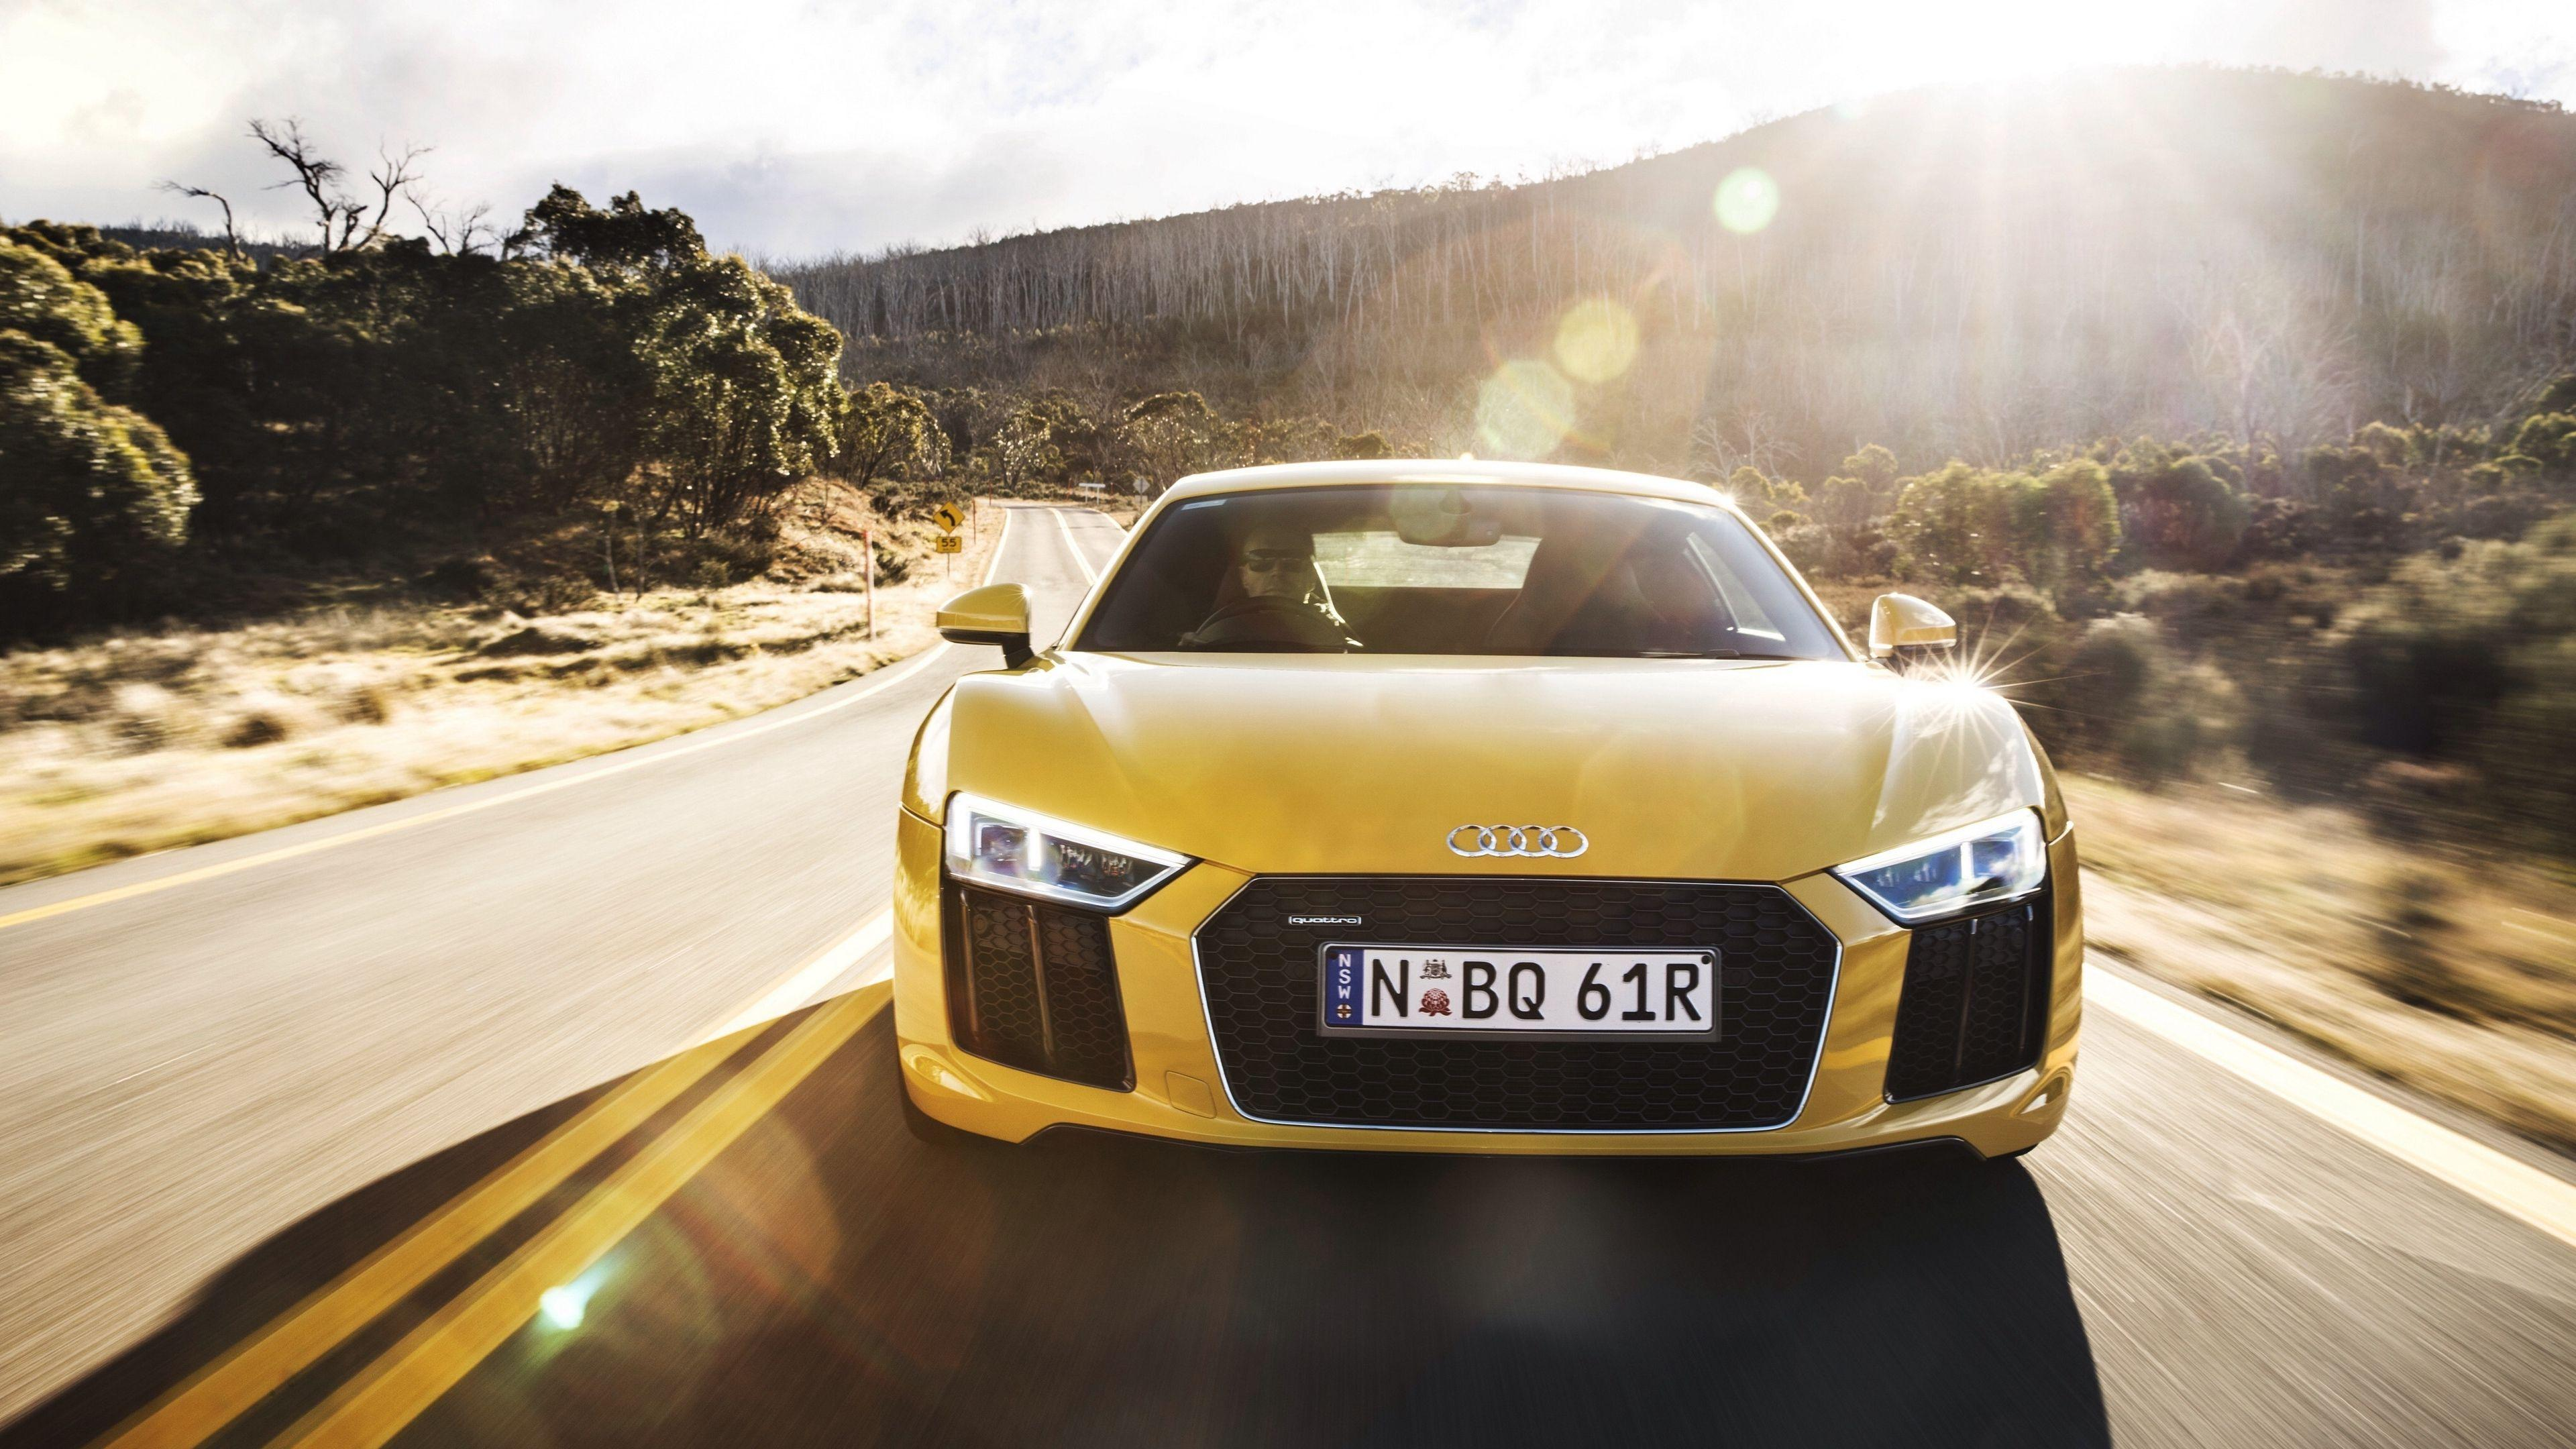 Download wallpapers 3840x2160 audi, r8, v10, yellow, front view 4k